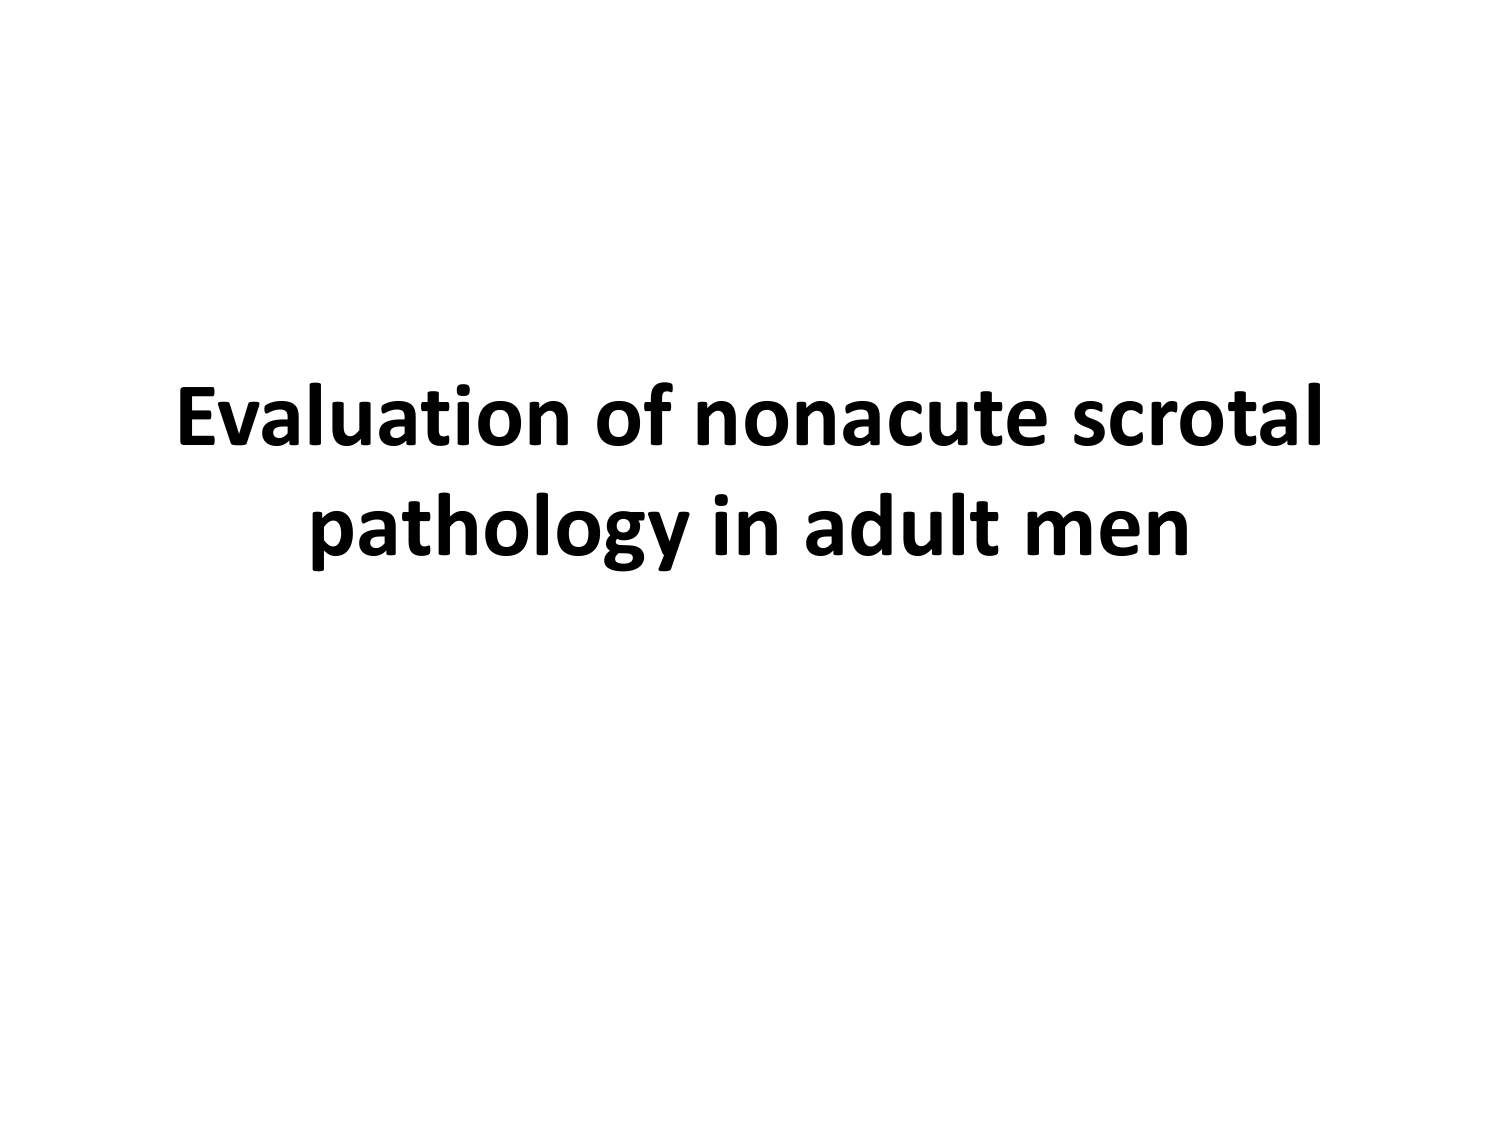 Evaluation of nonacute scrotal pathology in adult men VARICOCELE